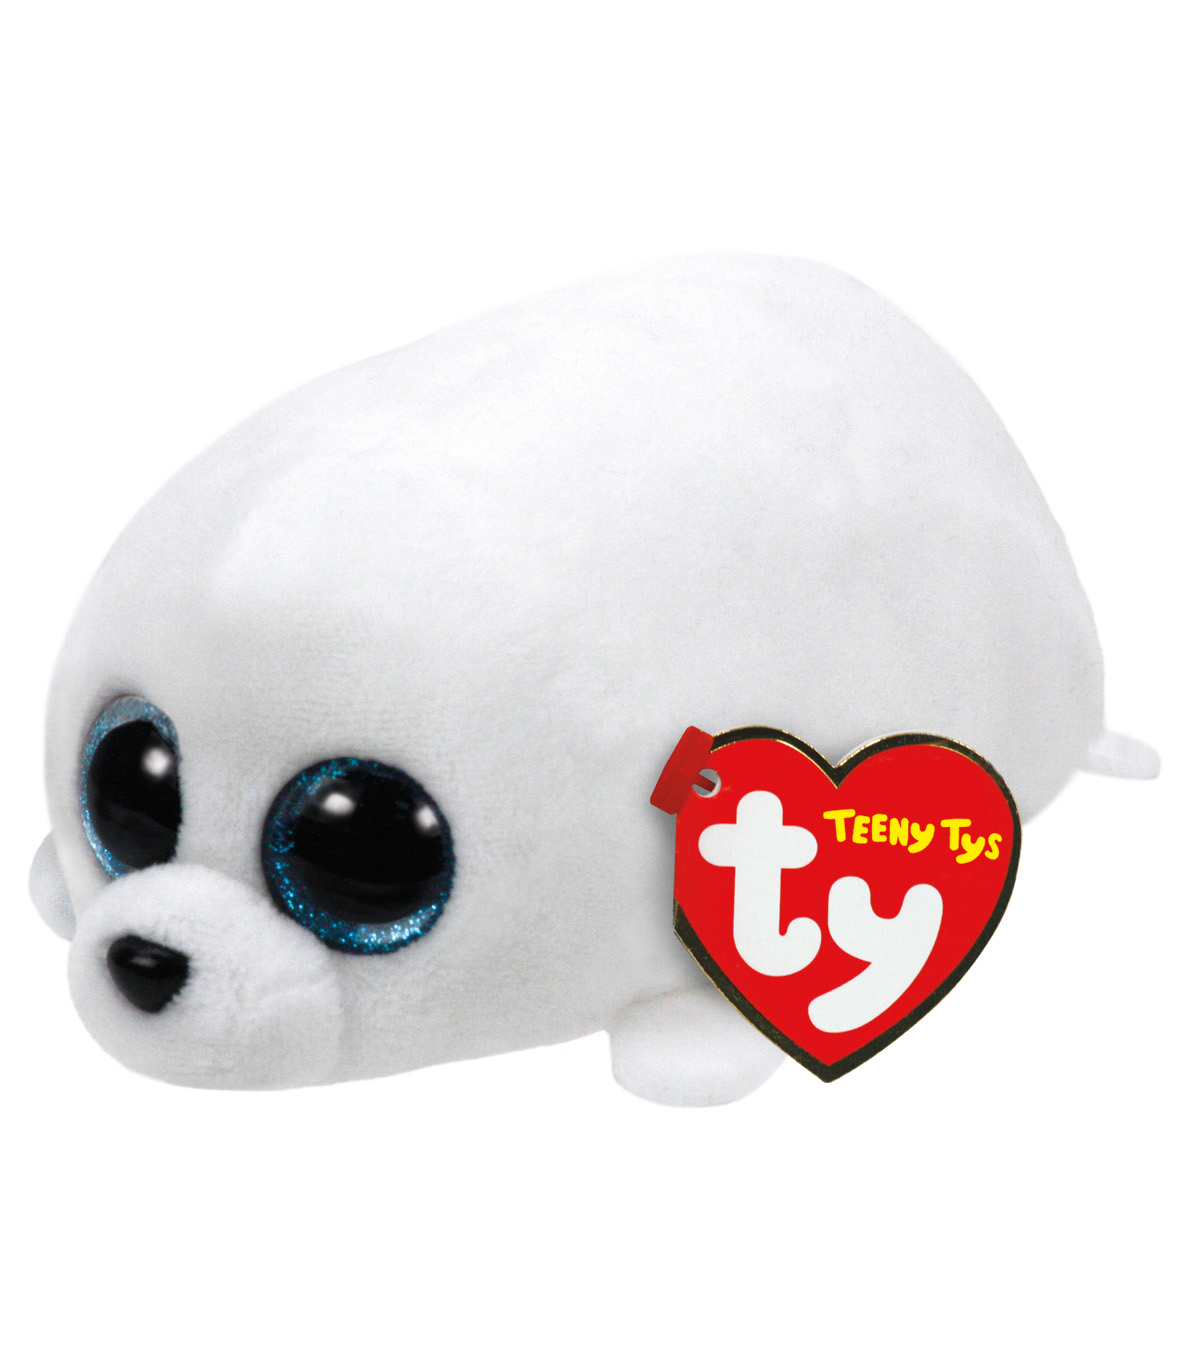 Ty Teeny Tys 4 u0027 u0027 Slippery Seal 5e44eceabaf1